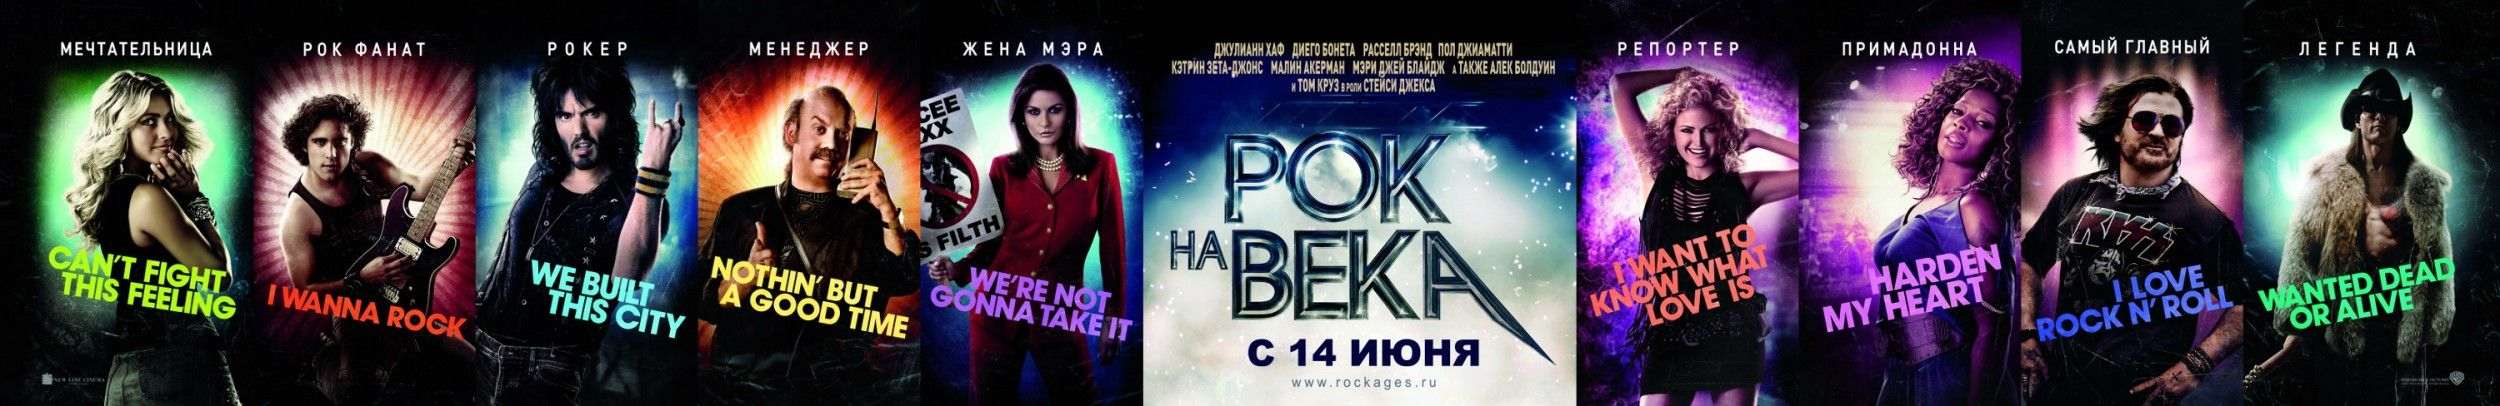 Rock Of Ages Movie Poster Banner Russian